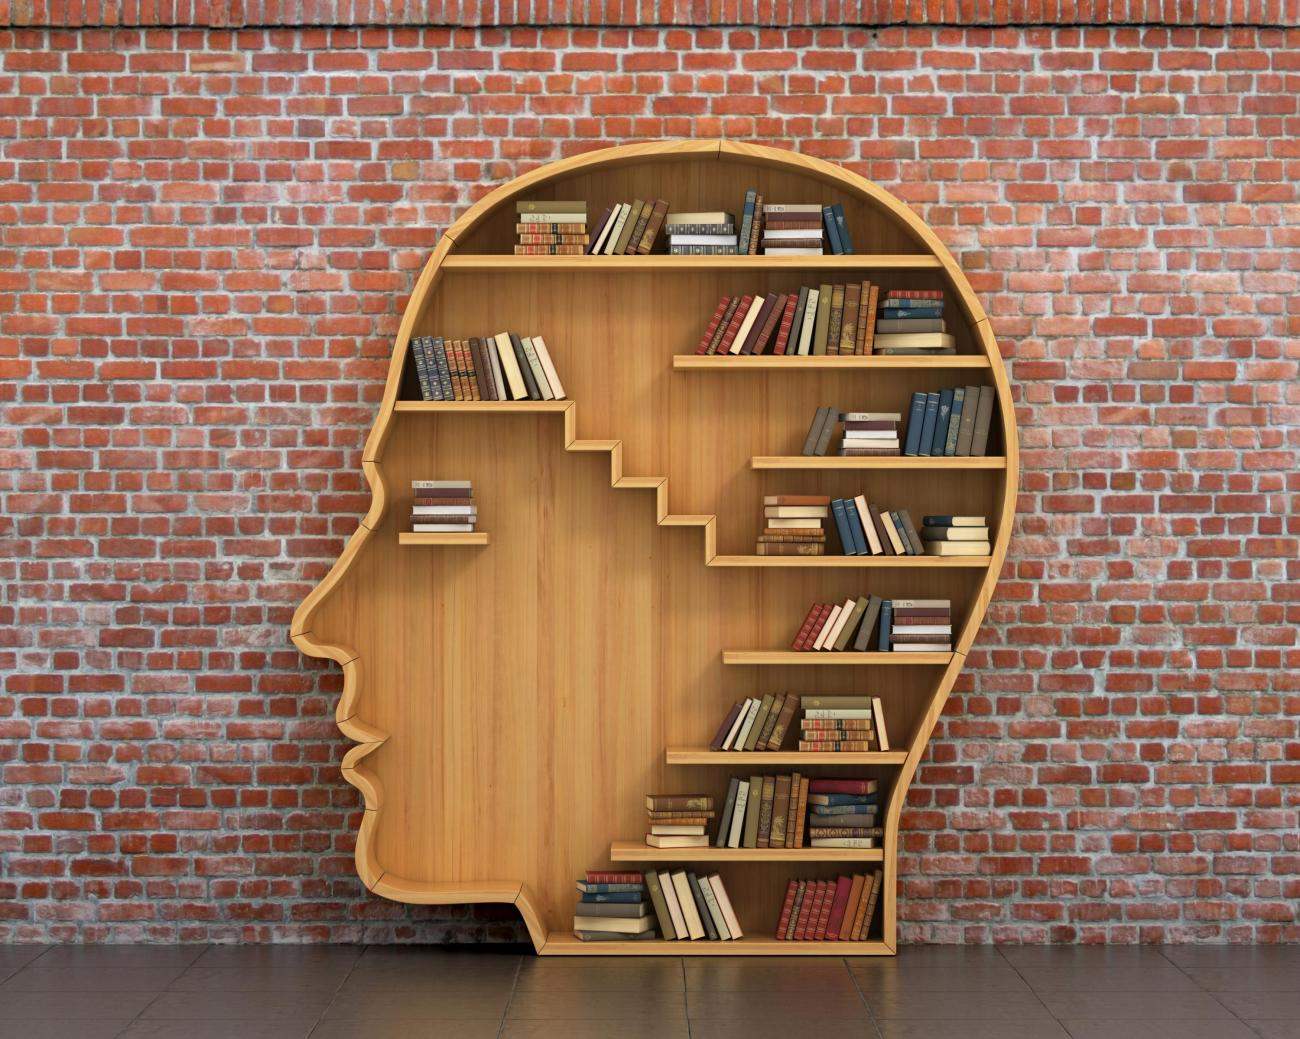 Bookshelf in shape of human head